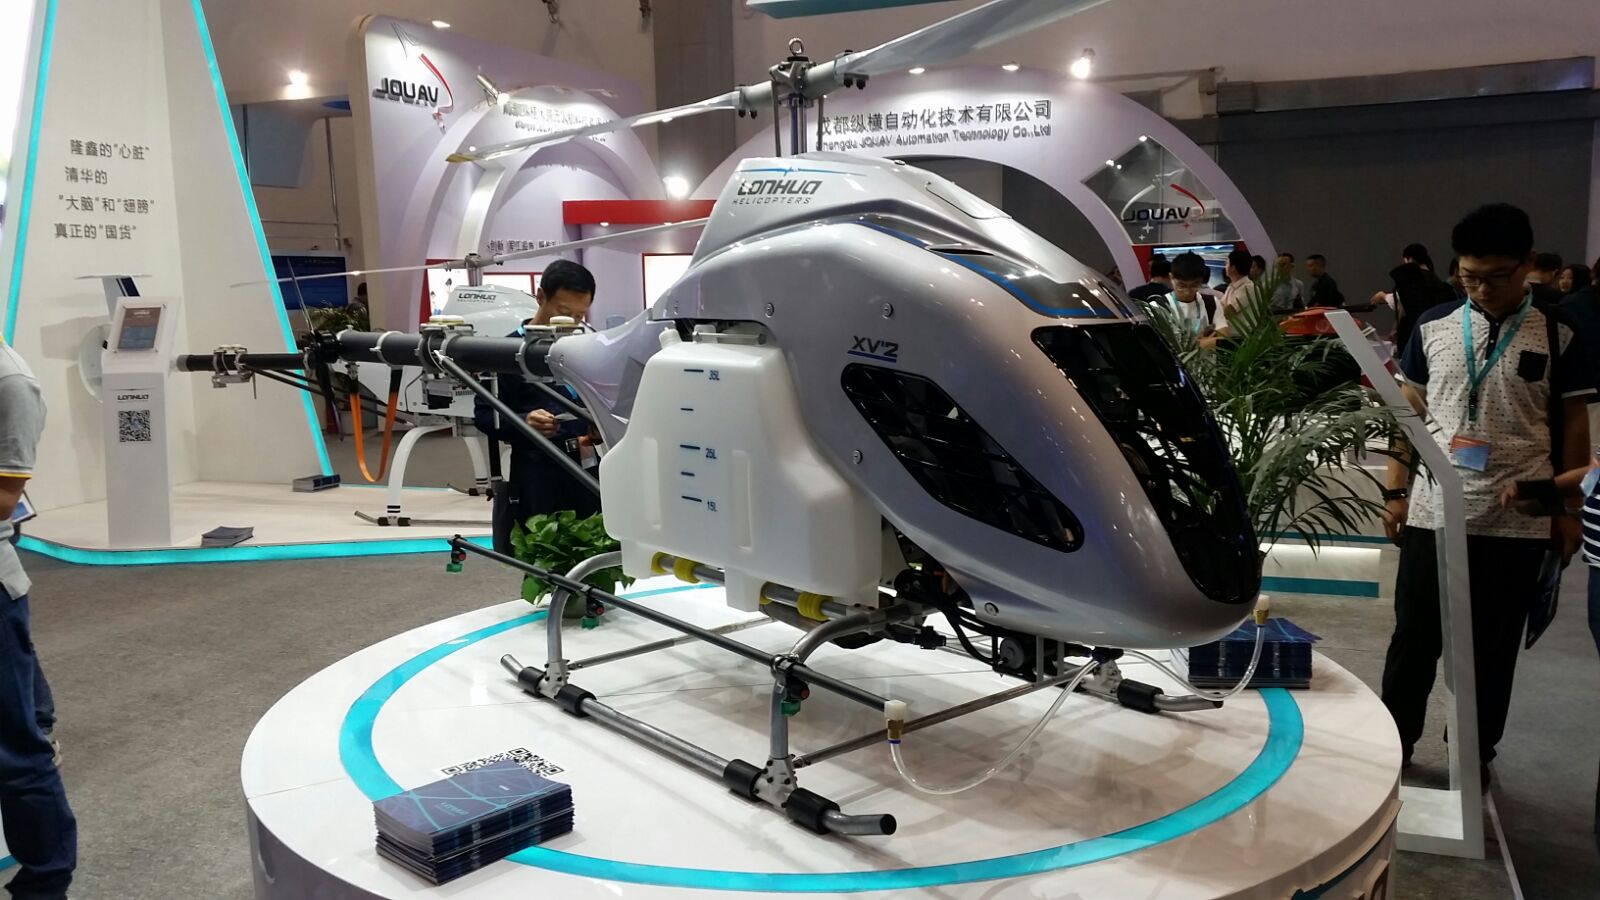 aviation expo china 2017 cmd-avio-aircraft-engines-motori-aerei-loncin-produzione-vendita-caserta-campania-made-in-italy (13)